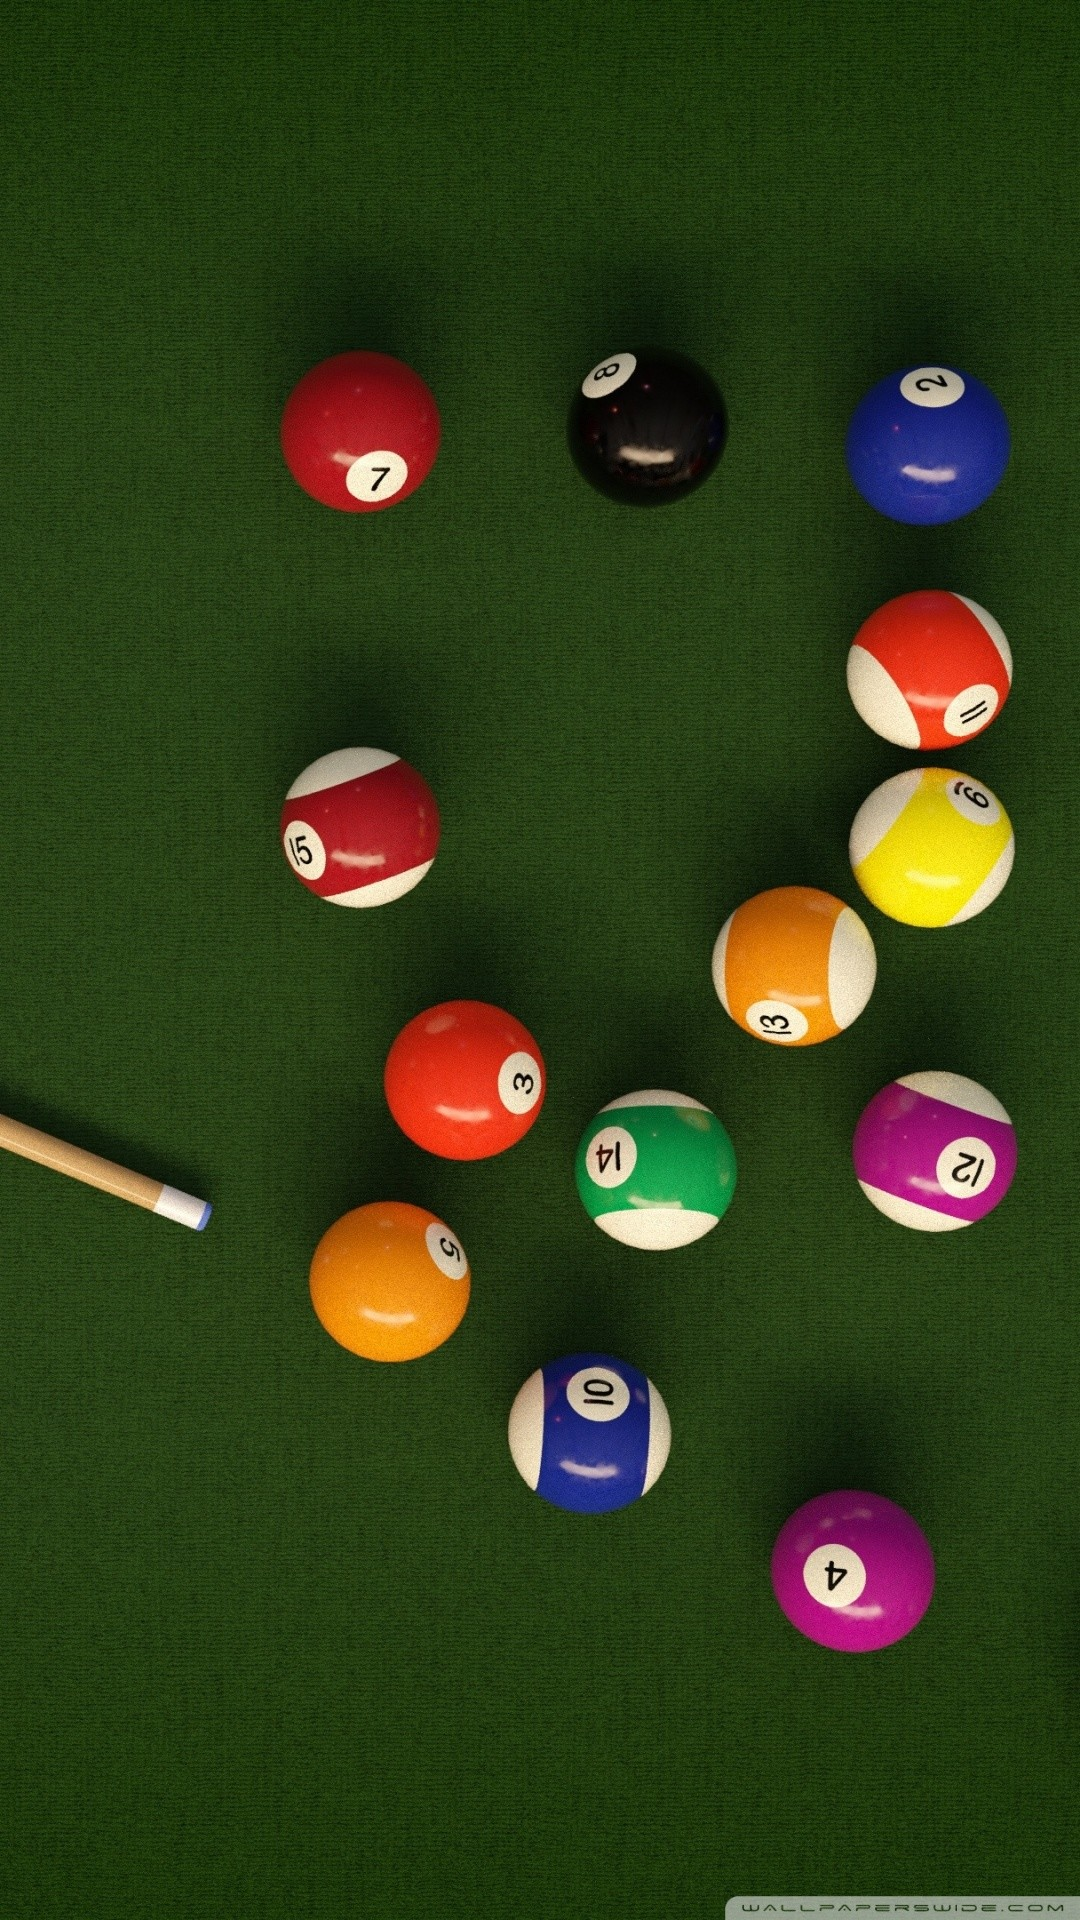 Free Billiards phone wallpaper by boo911511